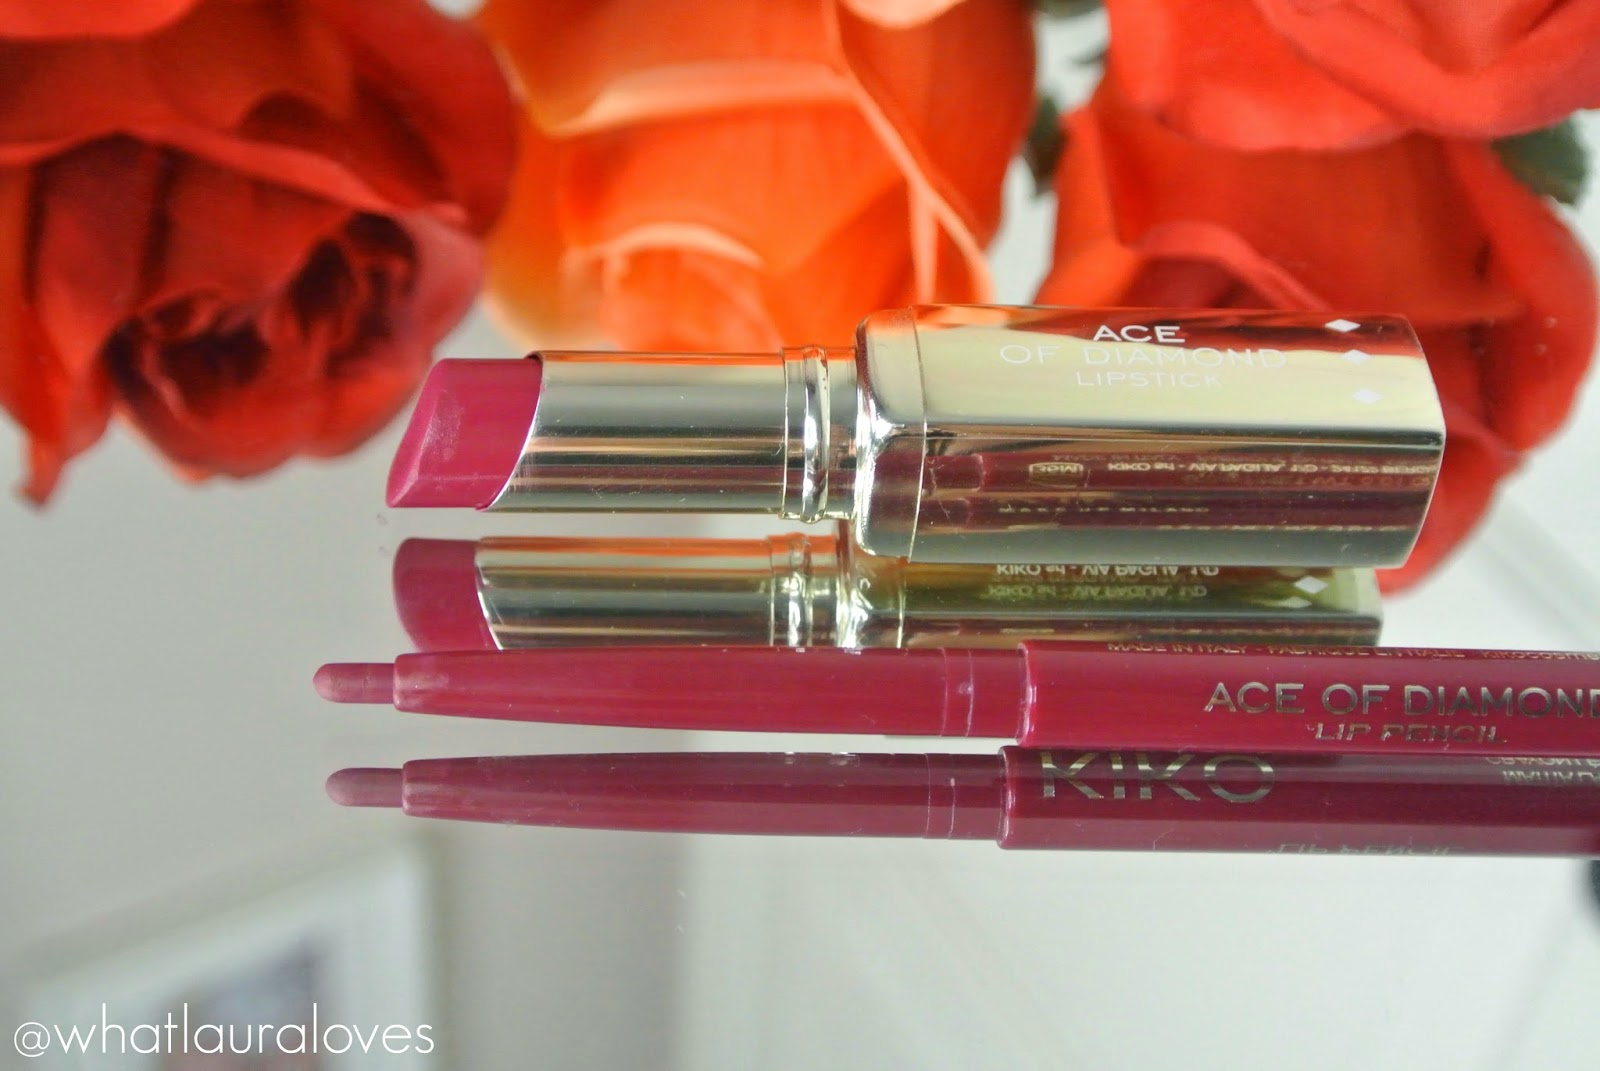 Kiko Ace of Diamond Lipstick and Lip Pencil Refined Burgundy Wine Berry Coloured Lips